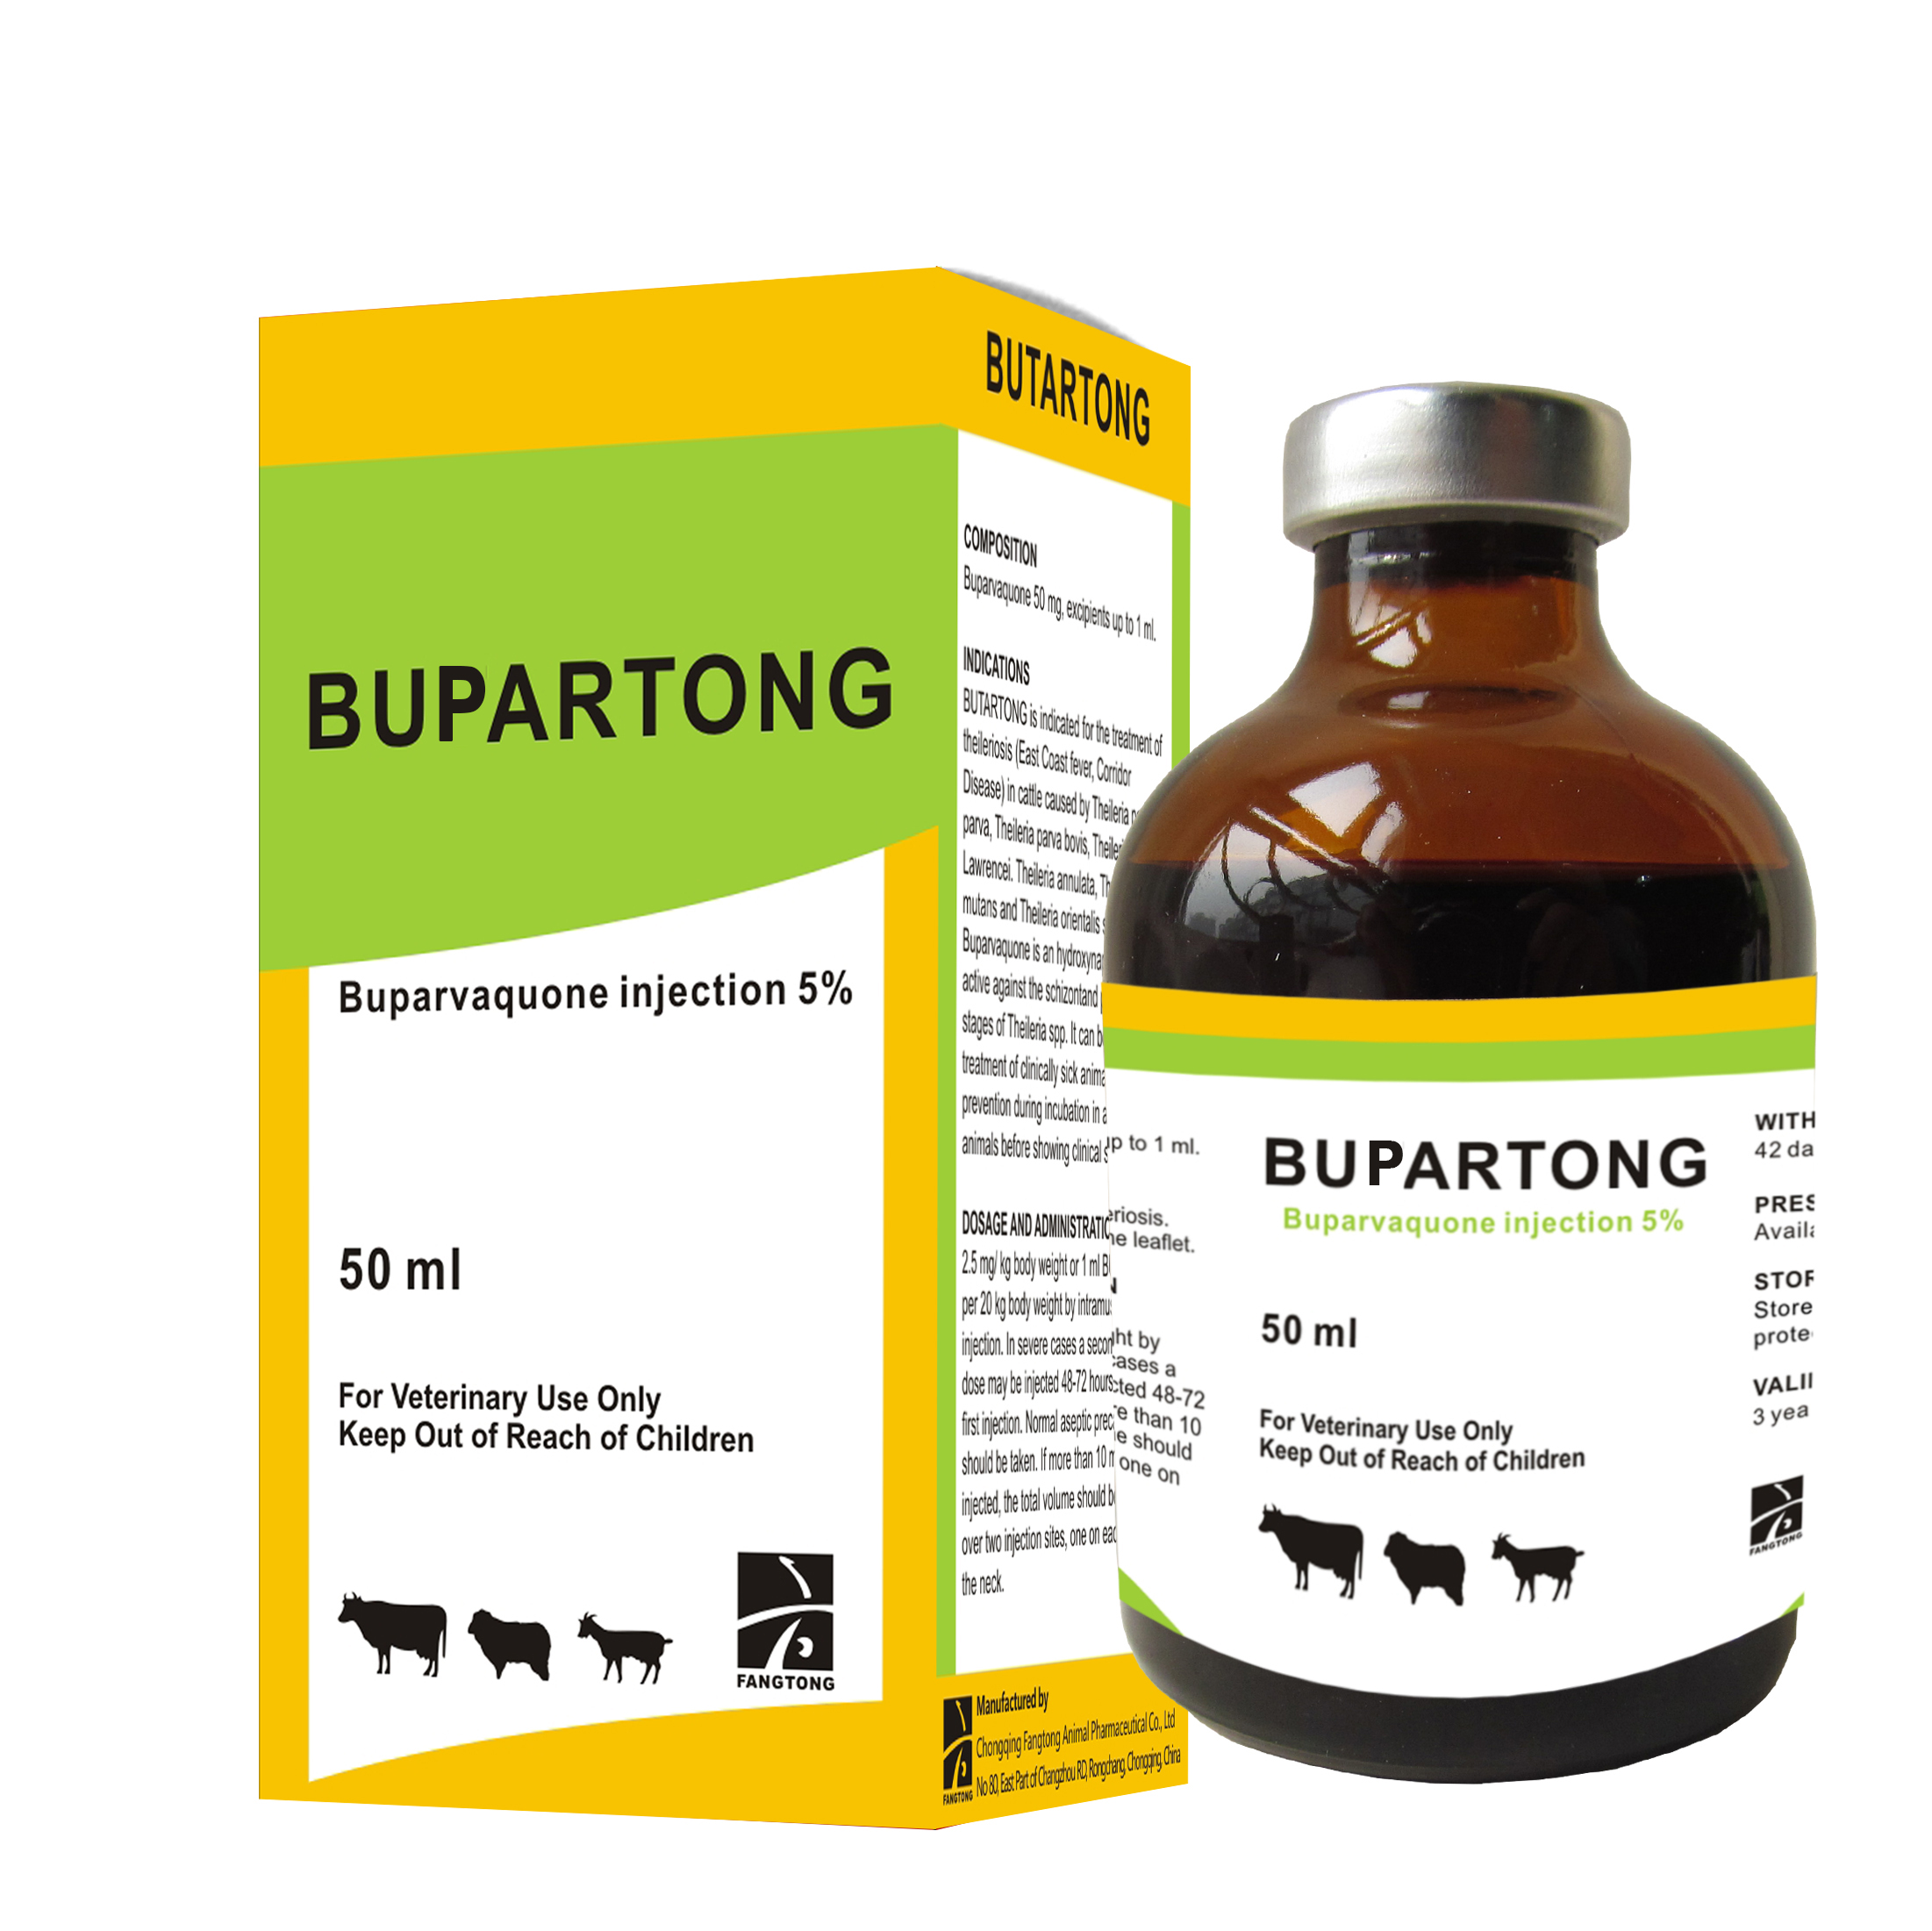 BUPARTONG  Buparvaquone injection 5% Featured Image